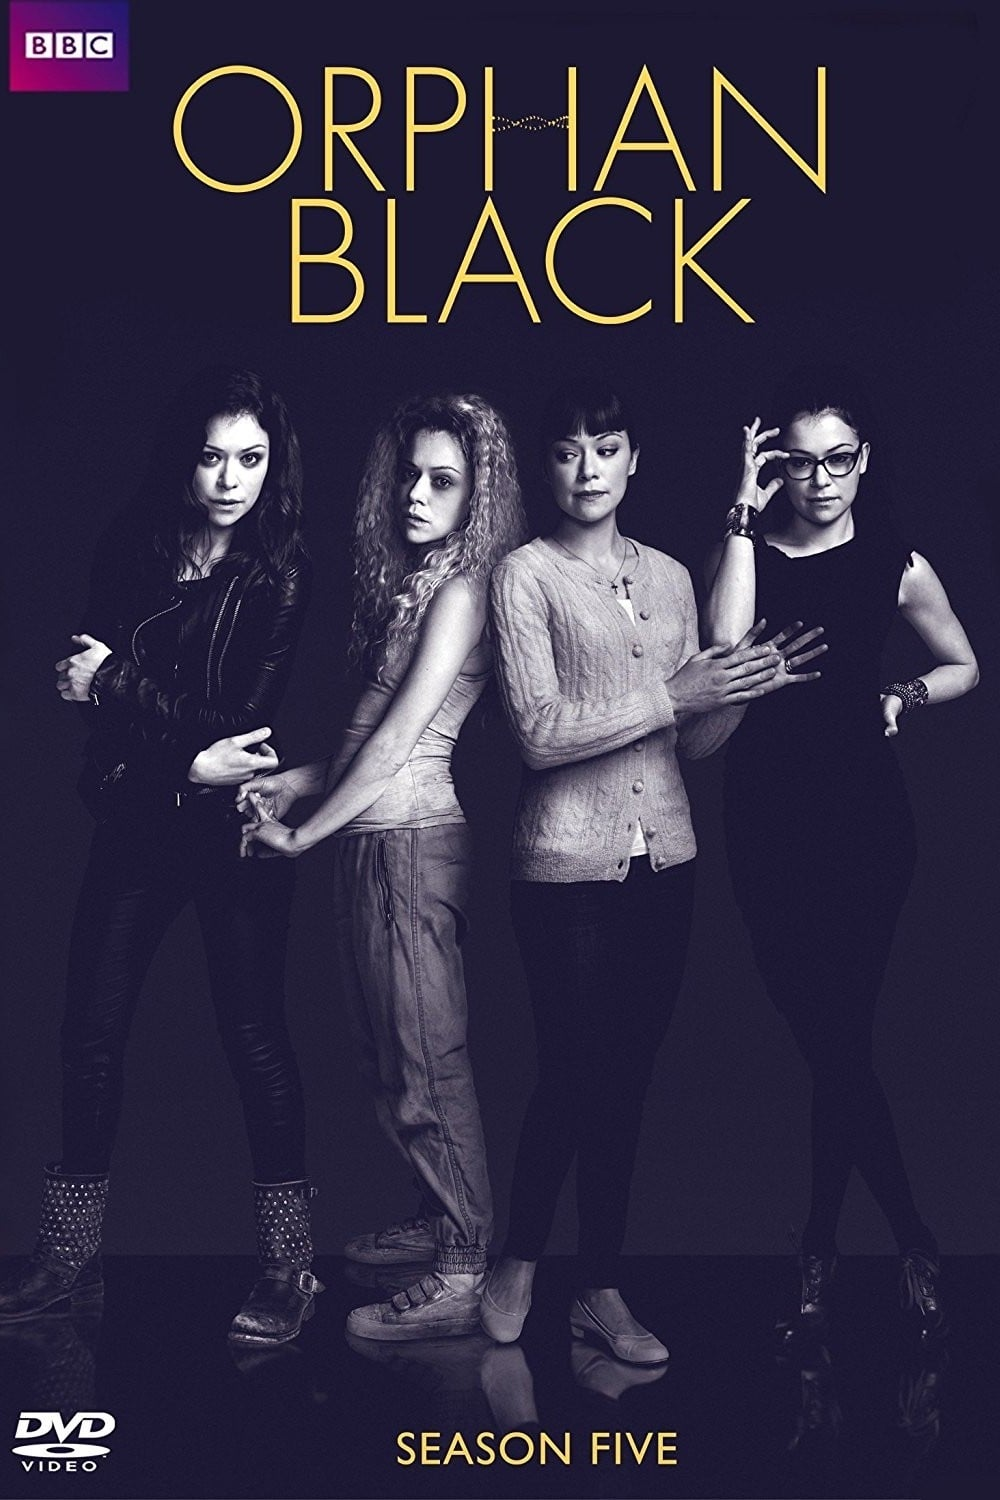 Orphan Black Season 5 putlocker 4k